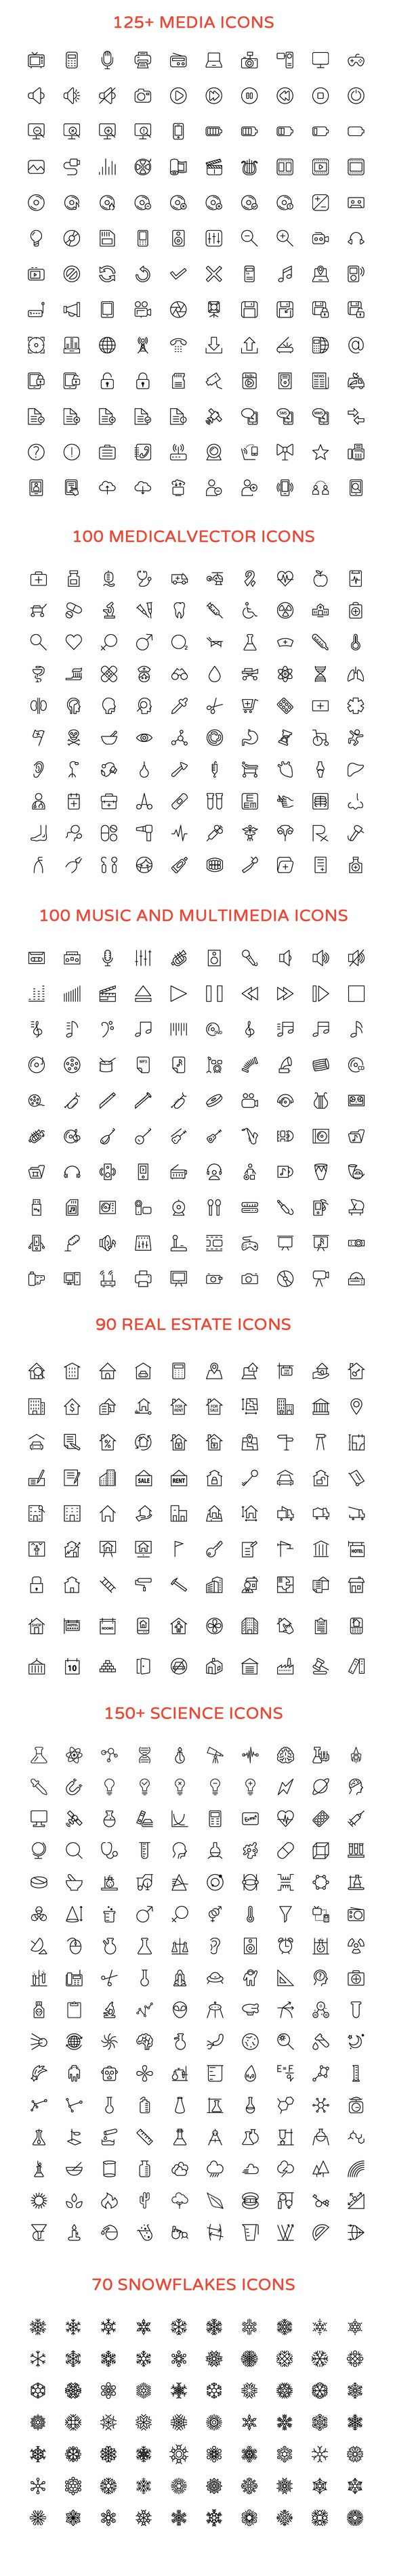 2800+ Line #Vector #Icons Bundle by Creative Stall http://crtv.mk/u3U9